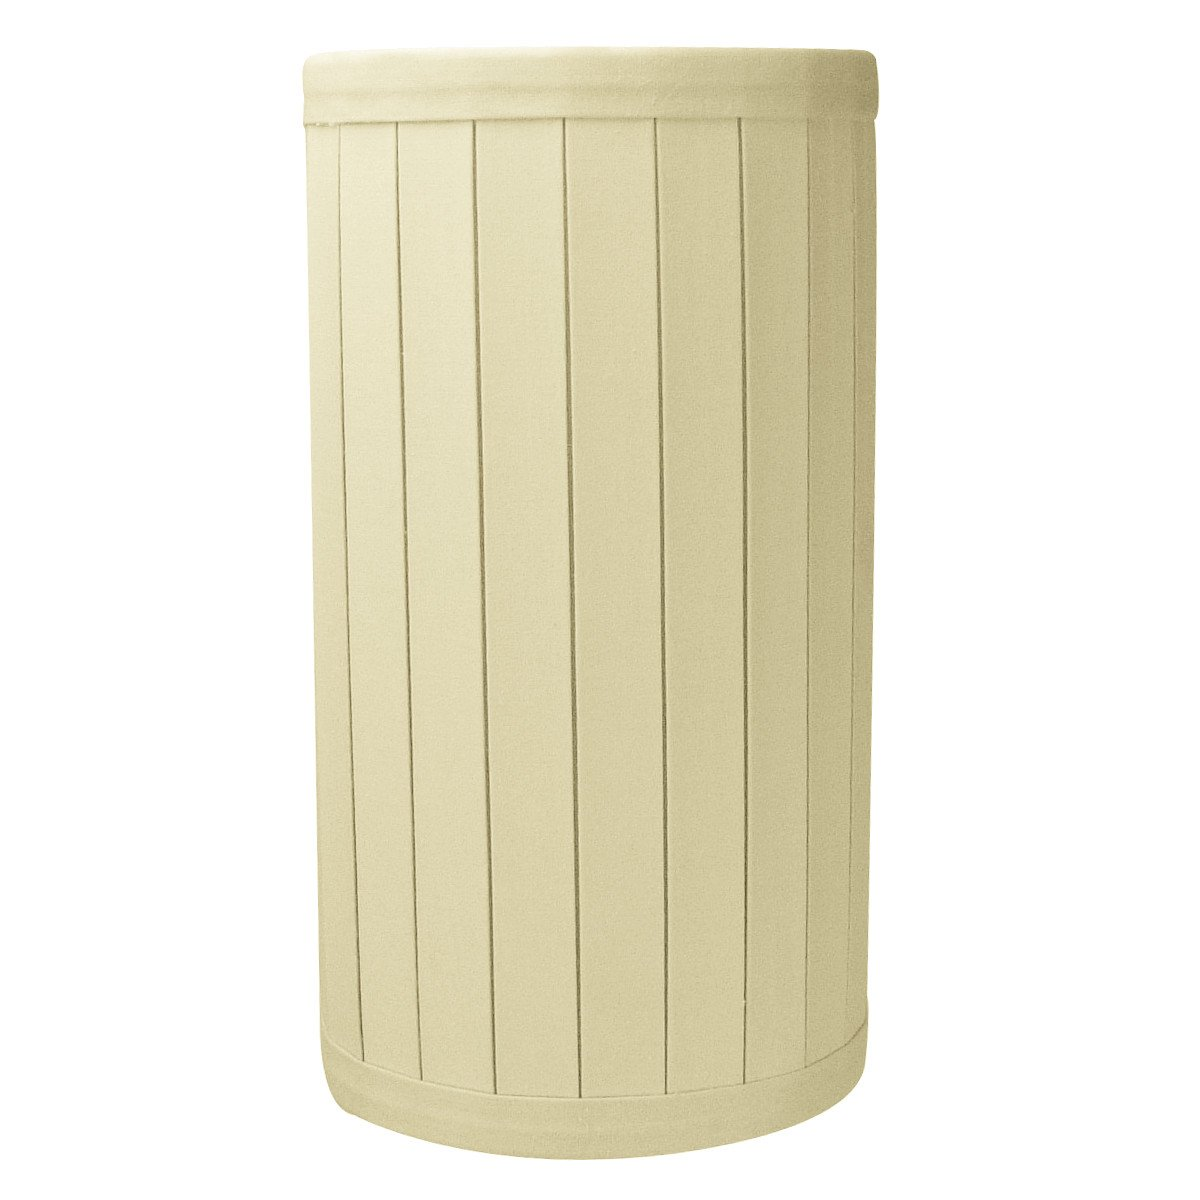 4x4x8 Off White Hardback UNO-Fitter Crisp Pleat Drum Lampshade by Home Concept - Perfect for Wall sconces -Small, Egg Shell